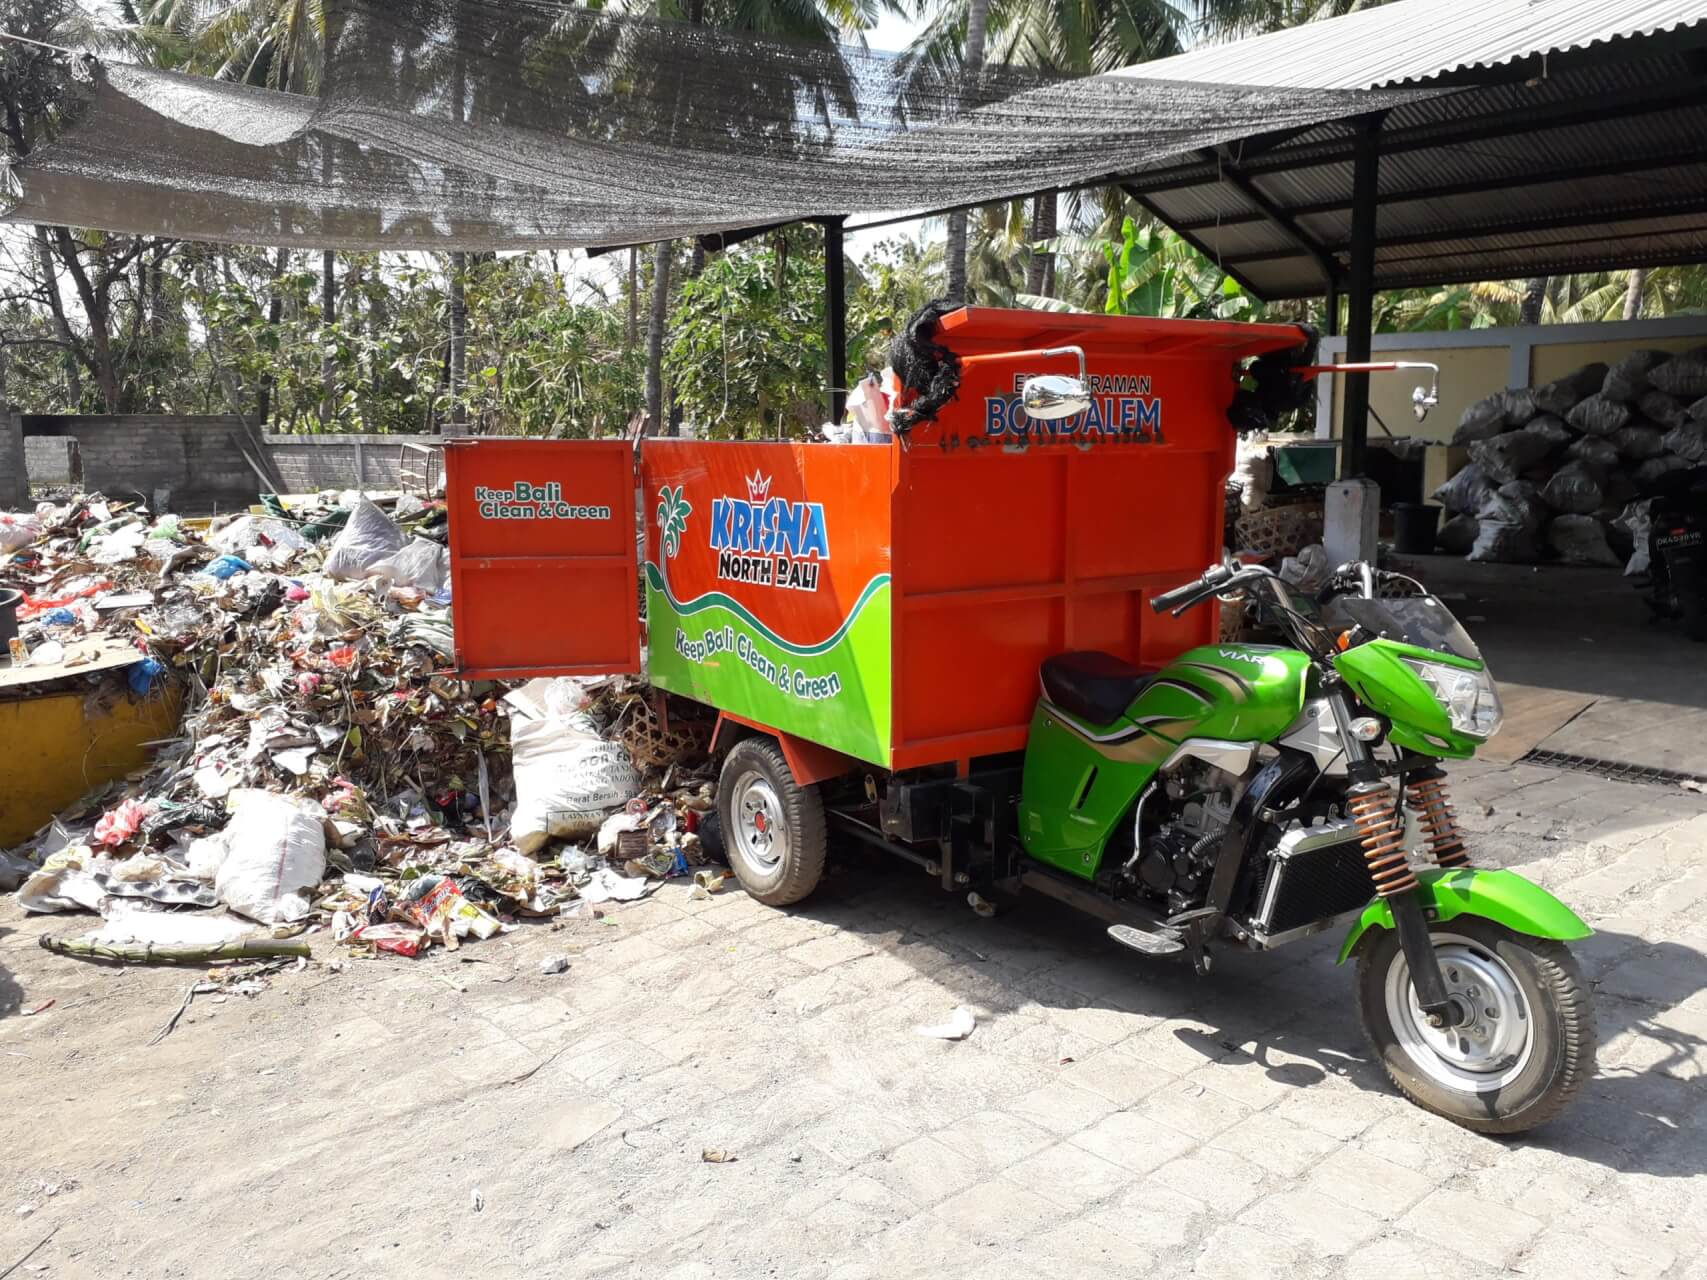 Bondalem waste collection tricycle